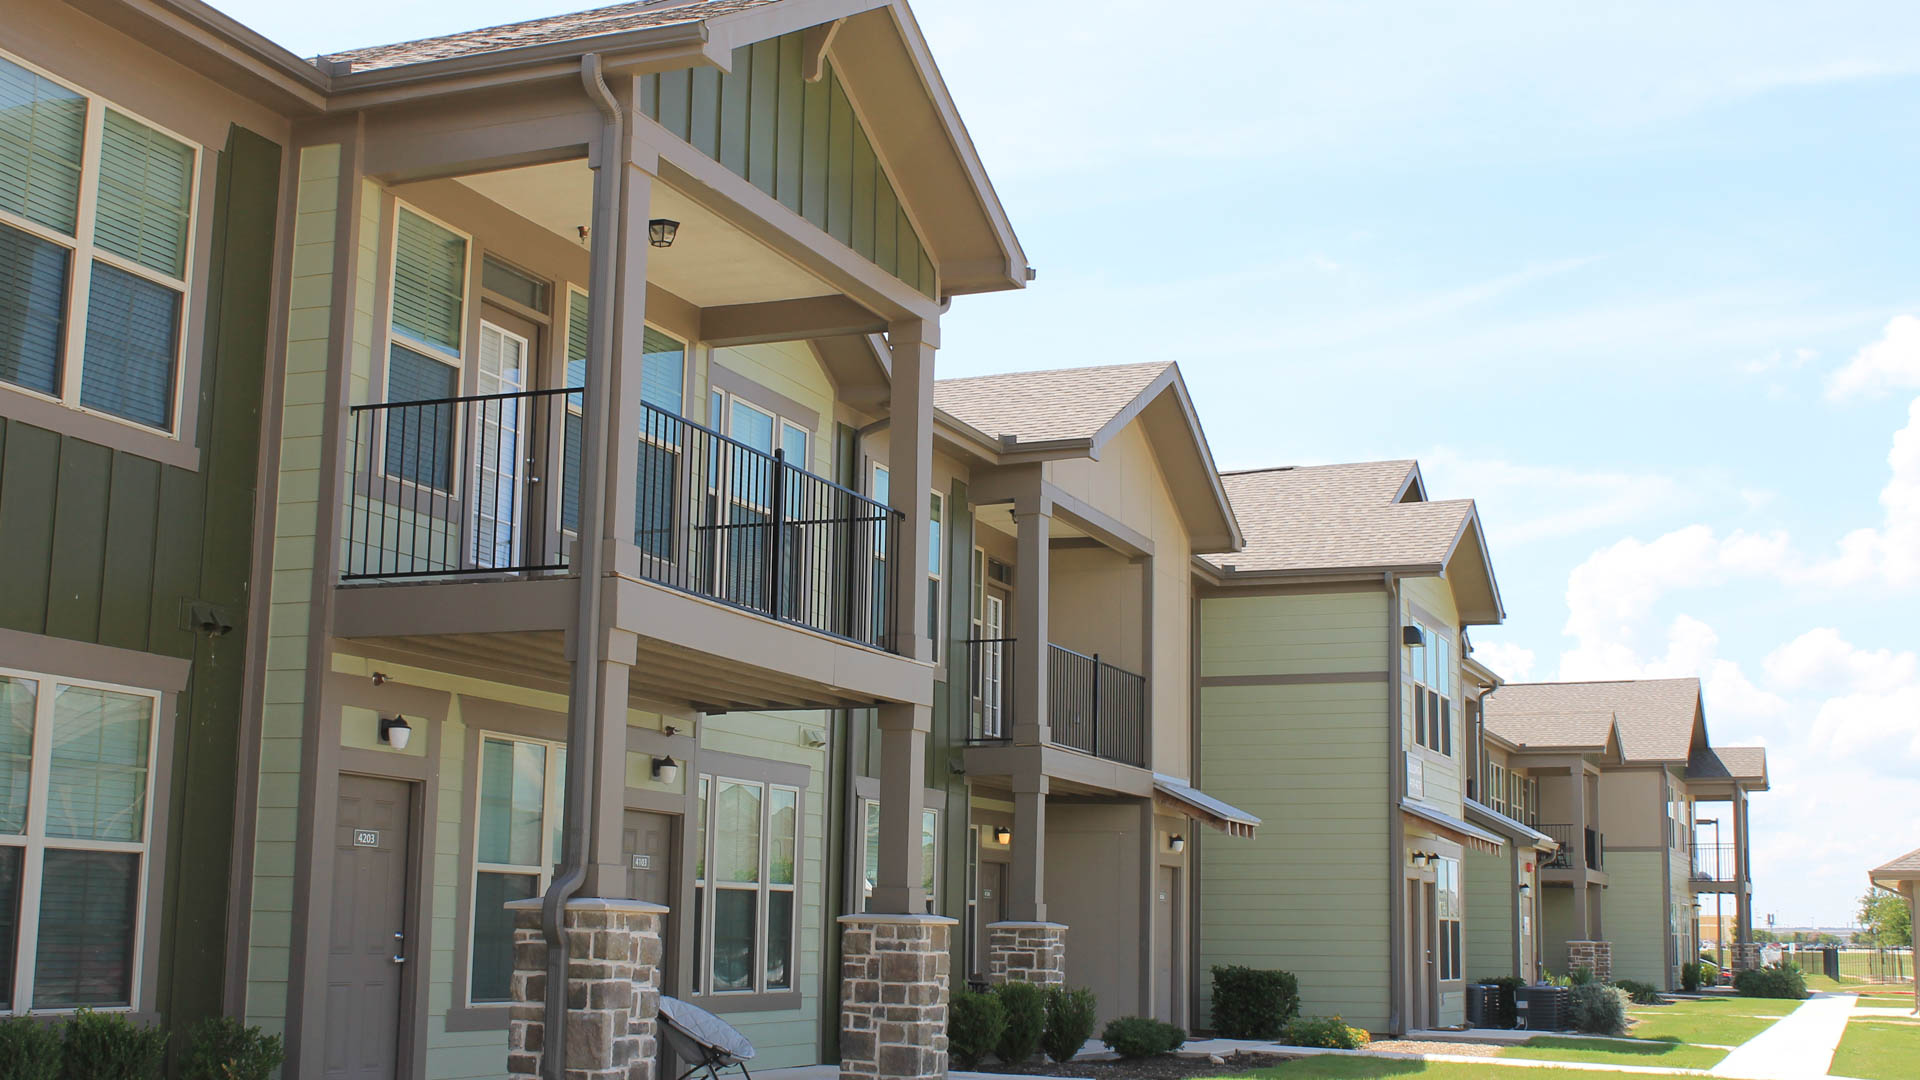 Townhome Exterior at Springs at Creekside in New Braunfels